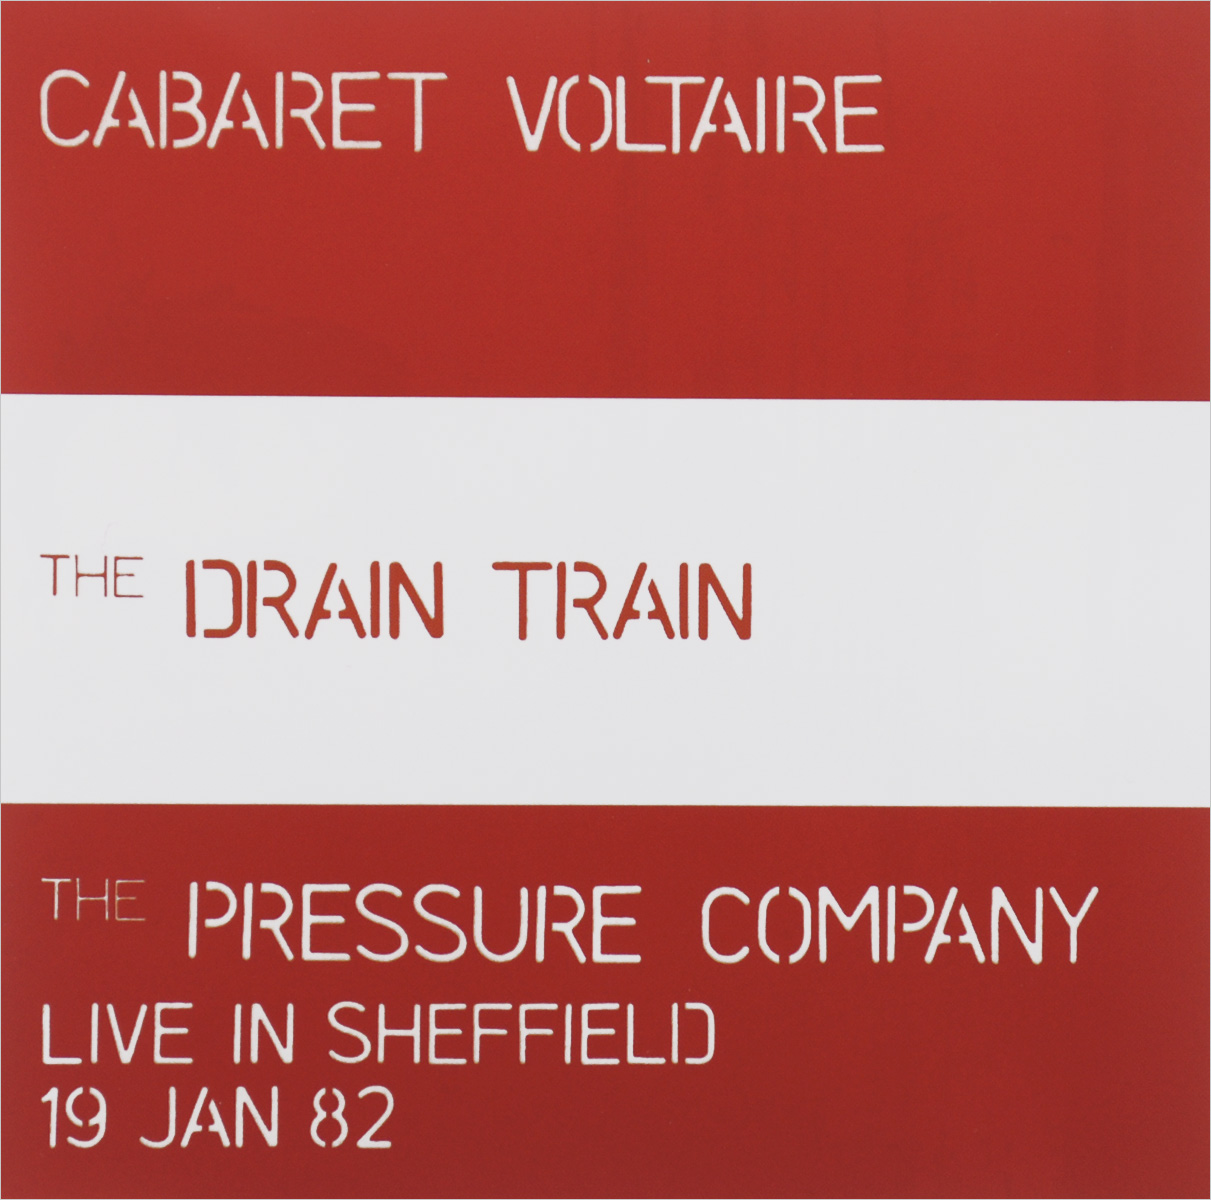 Cabaret Voltaire Cabaret Voltaire. The Drain Train & Pressure Co. Live In Sheffield cabaret berlin